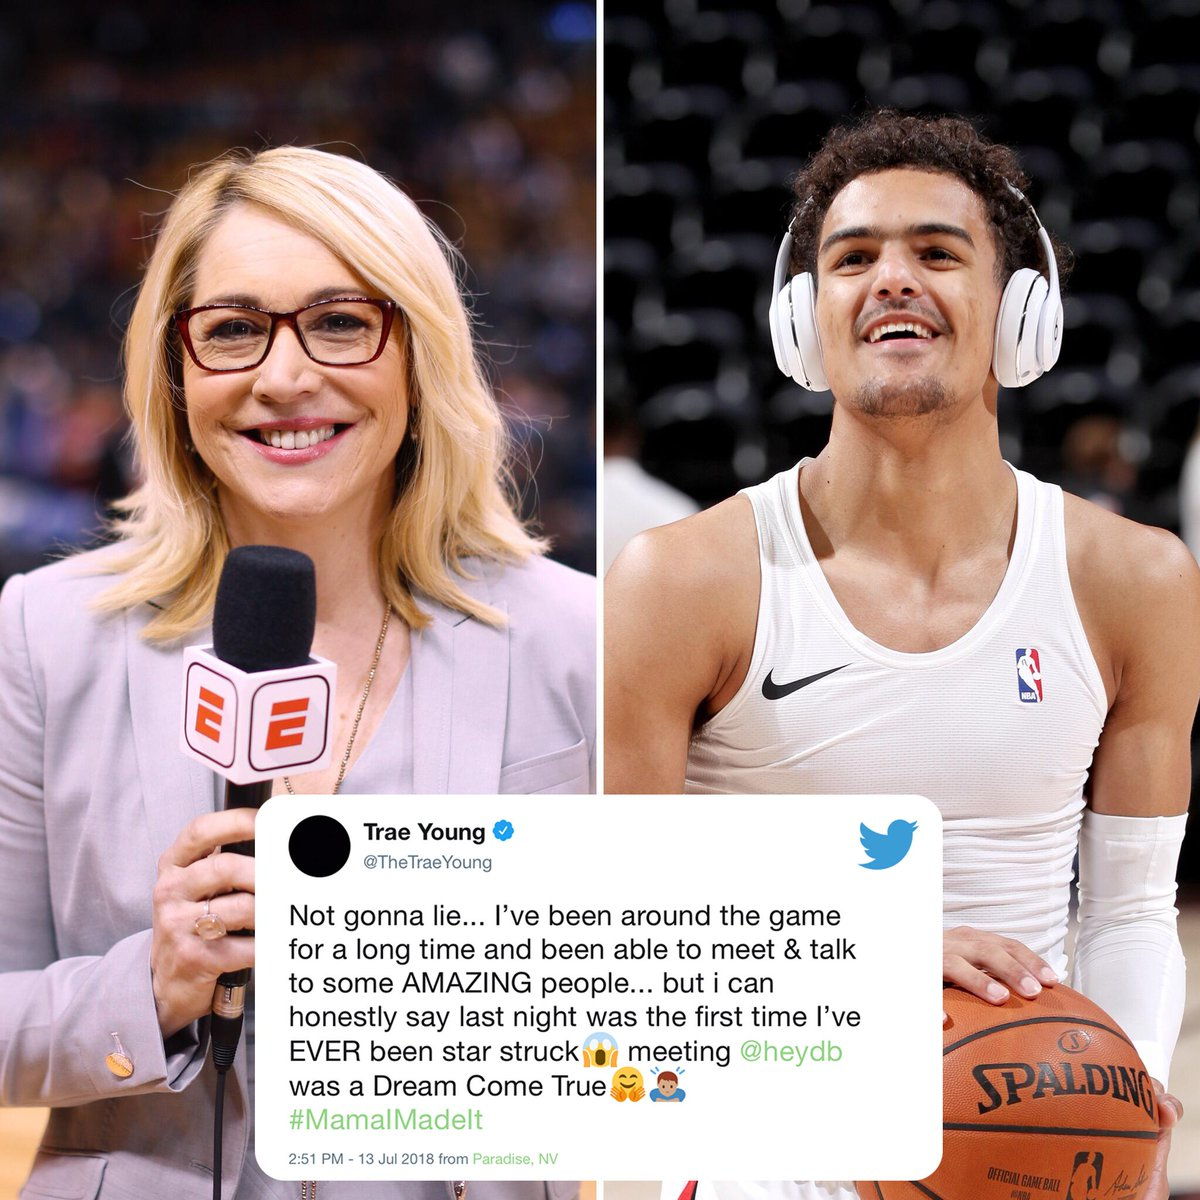 .@TheTraeYoung has a message for ya, @heydb 🤗